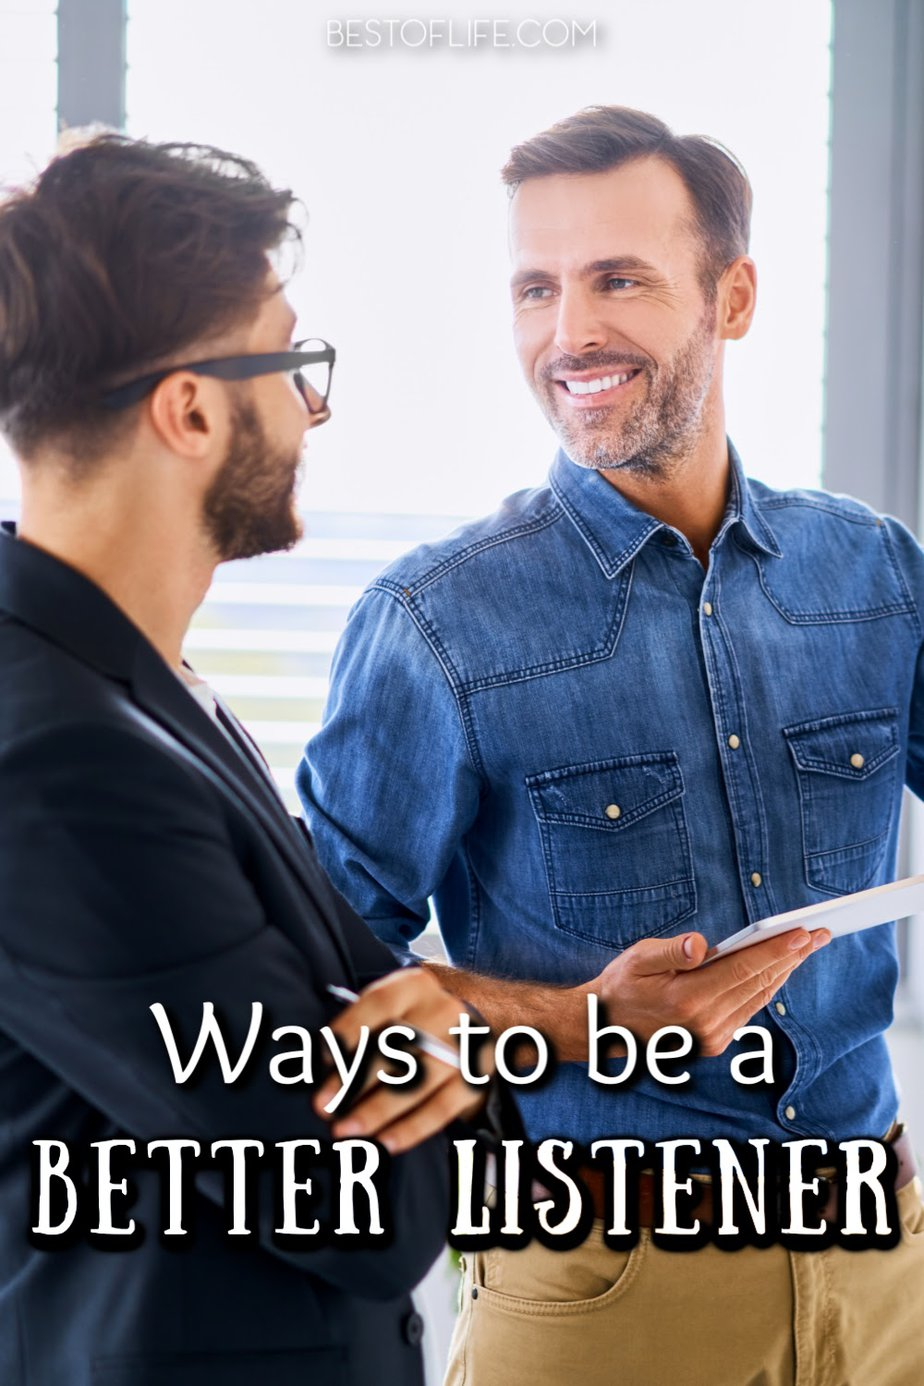 The best ways to be a better listener could help in many different aspects of life from romance to professional and everything in between. Lifehacks | Tips for Listening | Ideas for Listening | Ways to Pay More Attention #life #hacks